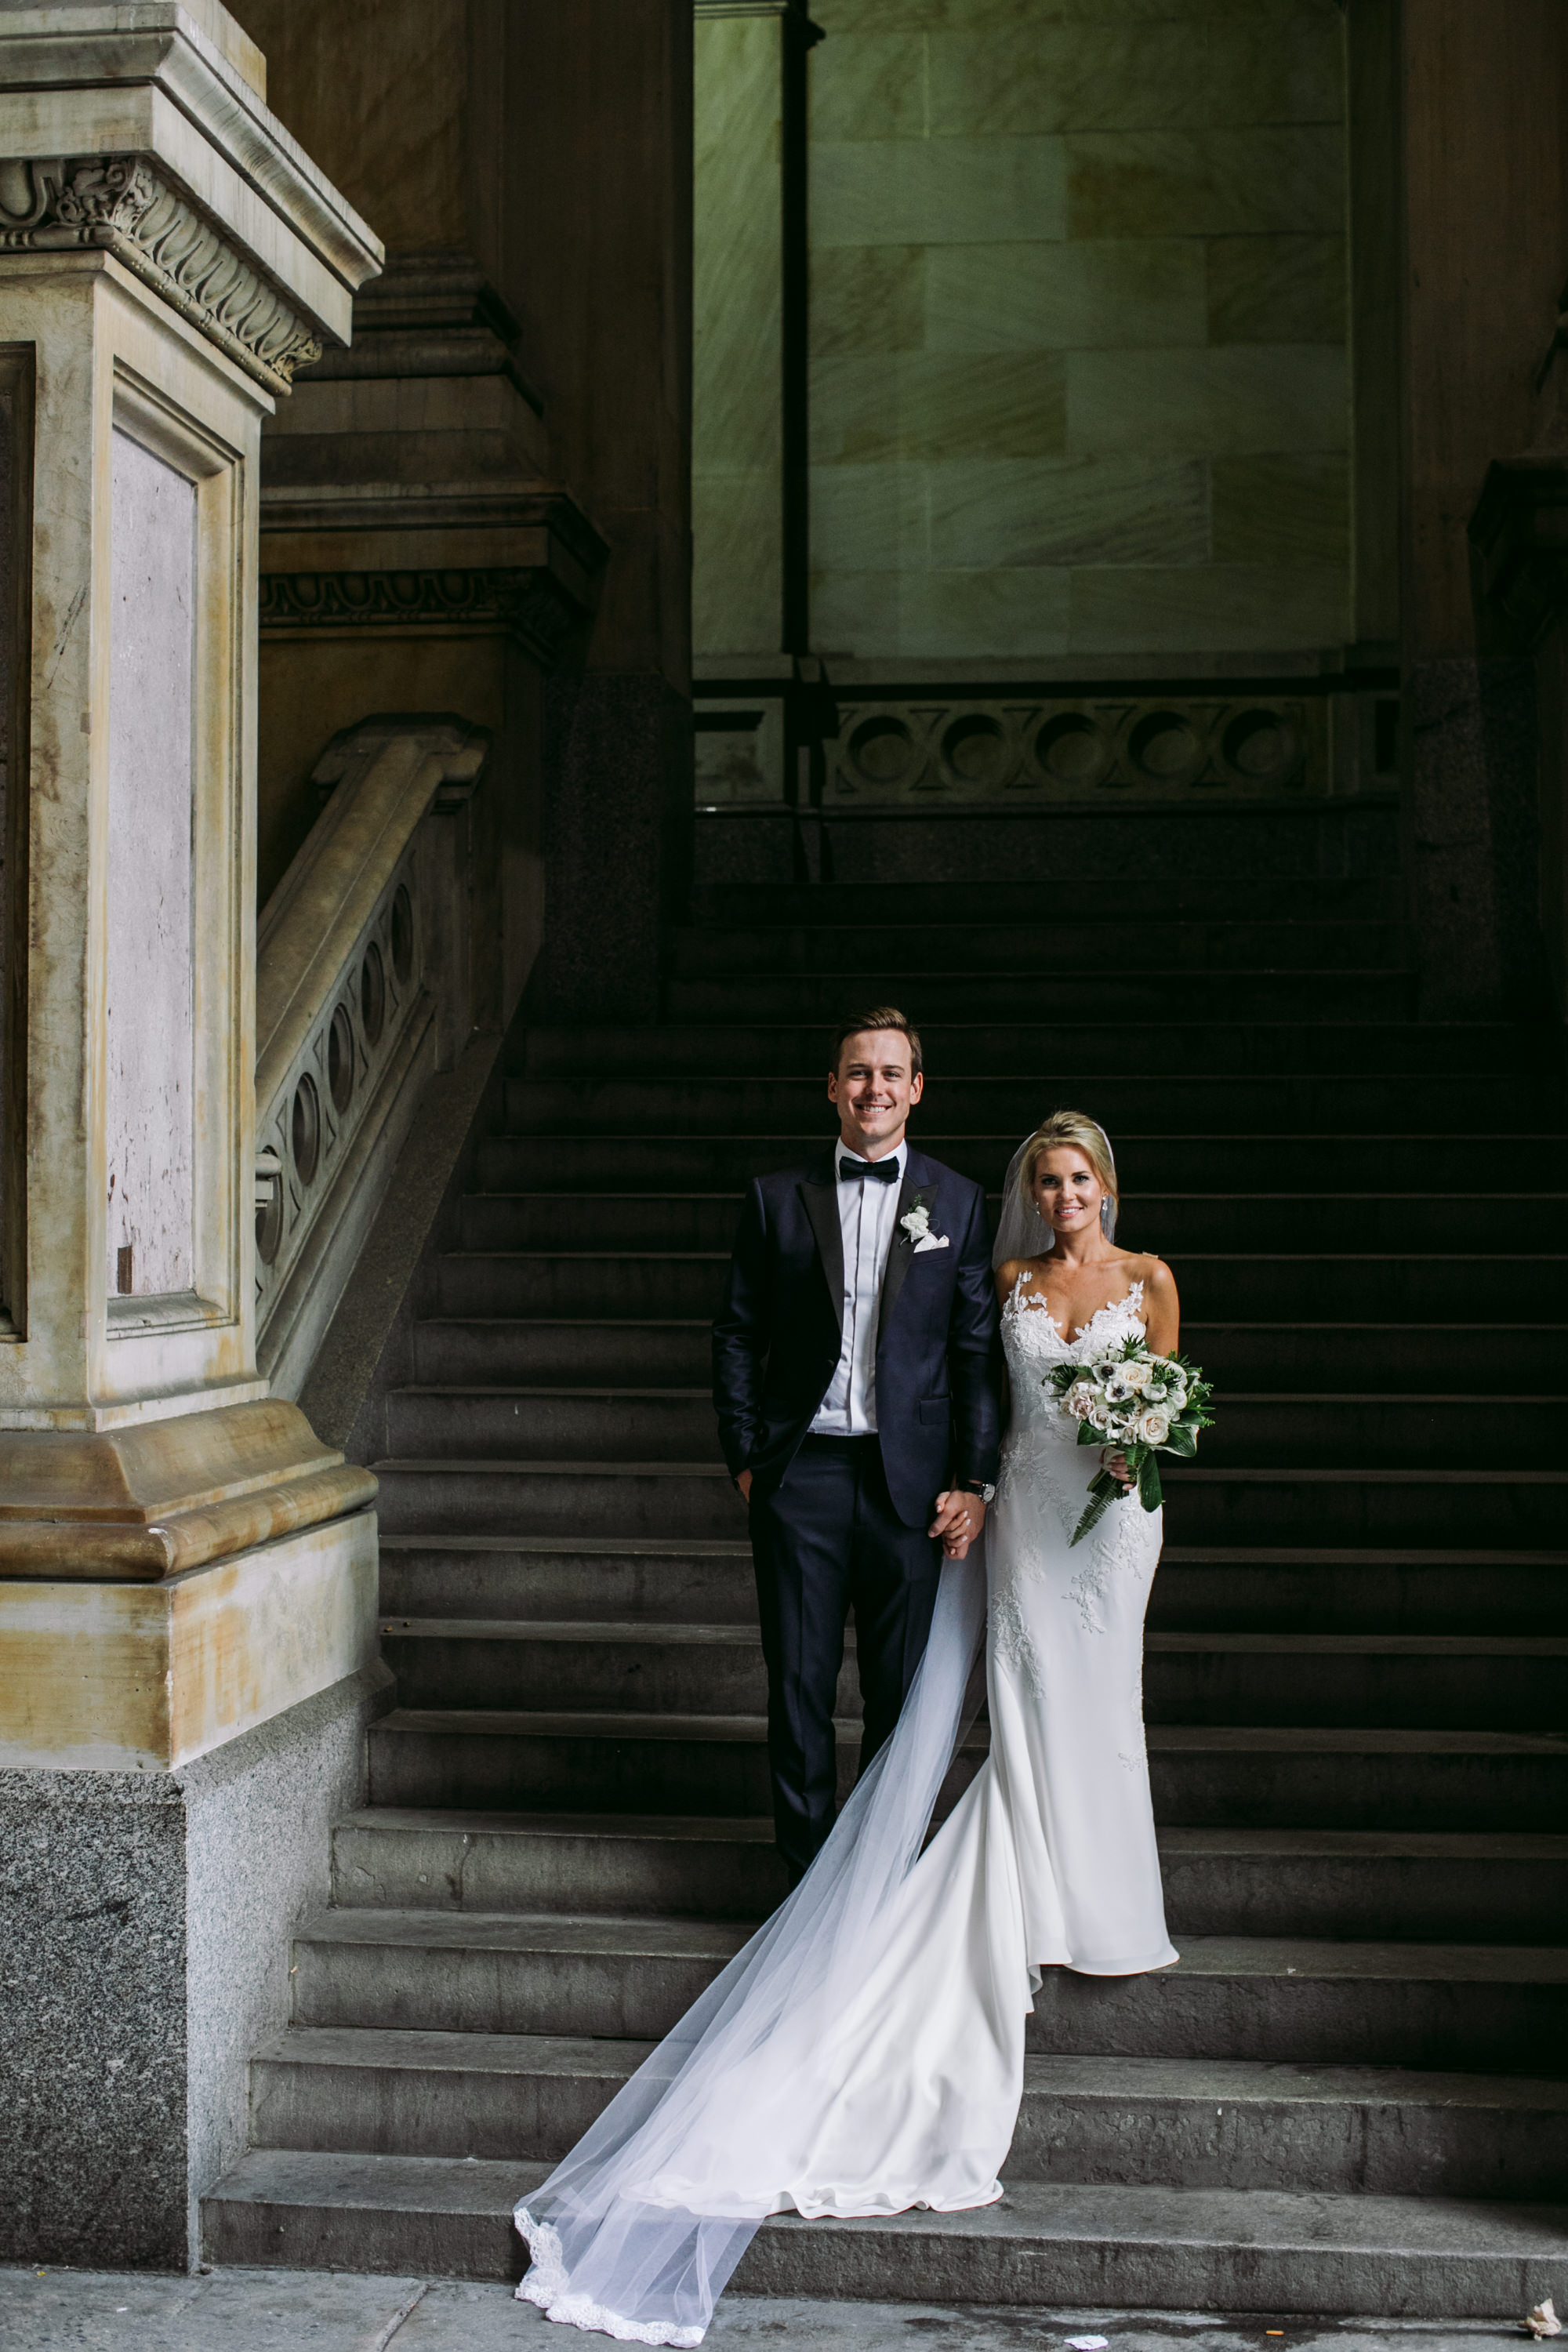 photography-wedding-weddings-natural-candid-union league-philadelphia-black tie-city hall-broad street-editorial-modern-fine-art-10.JPG